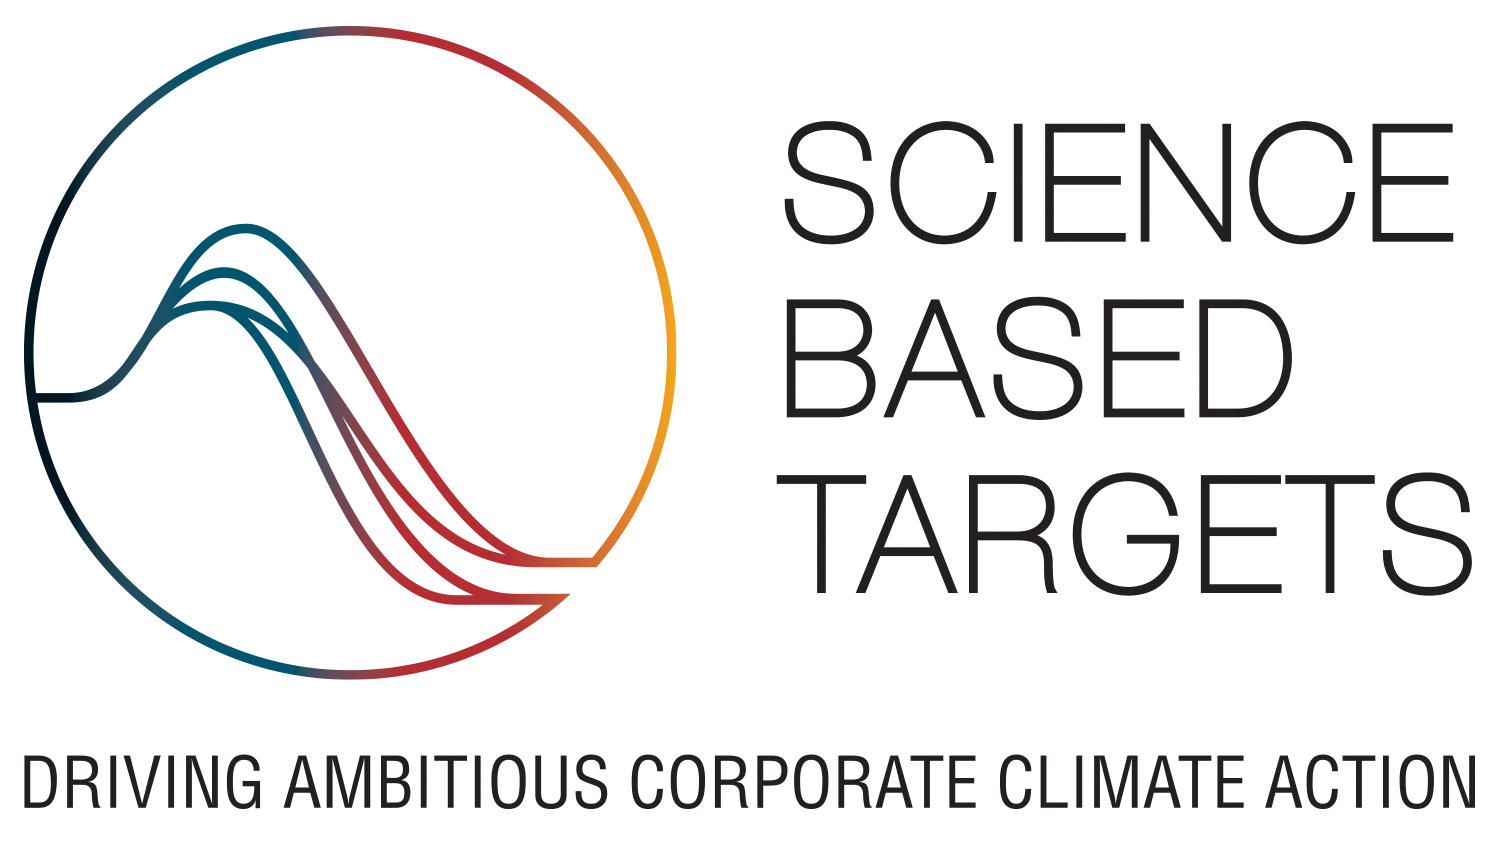 330+ target-setting firms reduce emissions by a quarter in five years since Paris Agreement